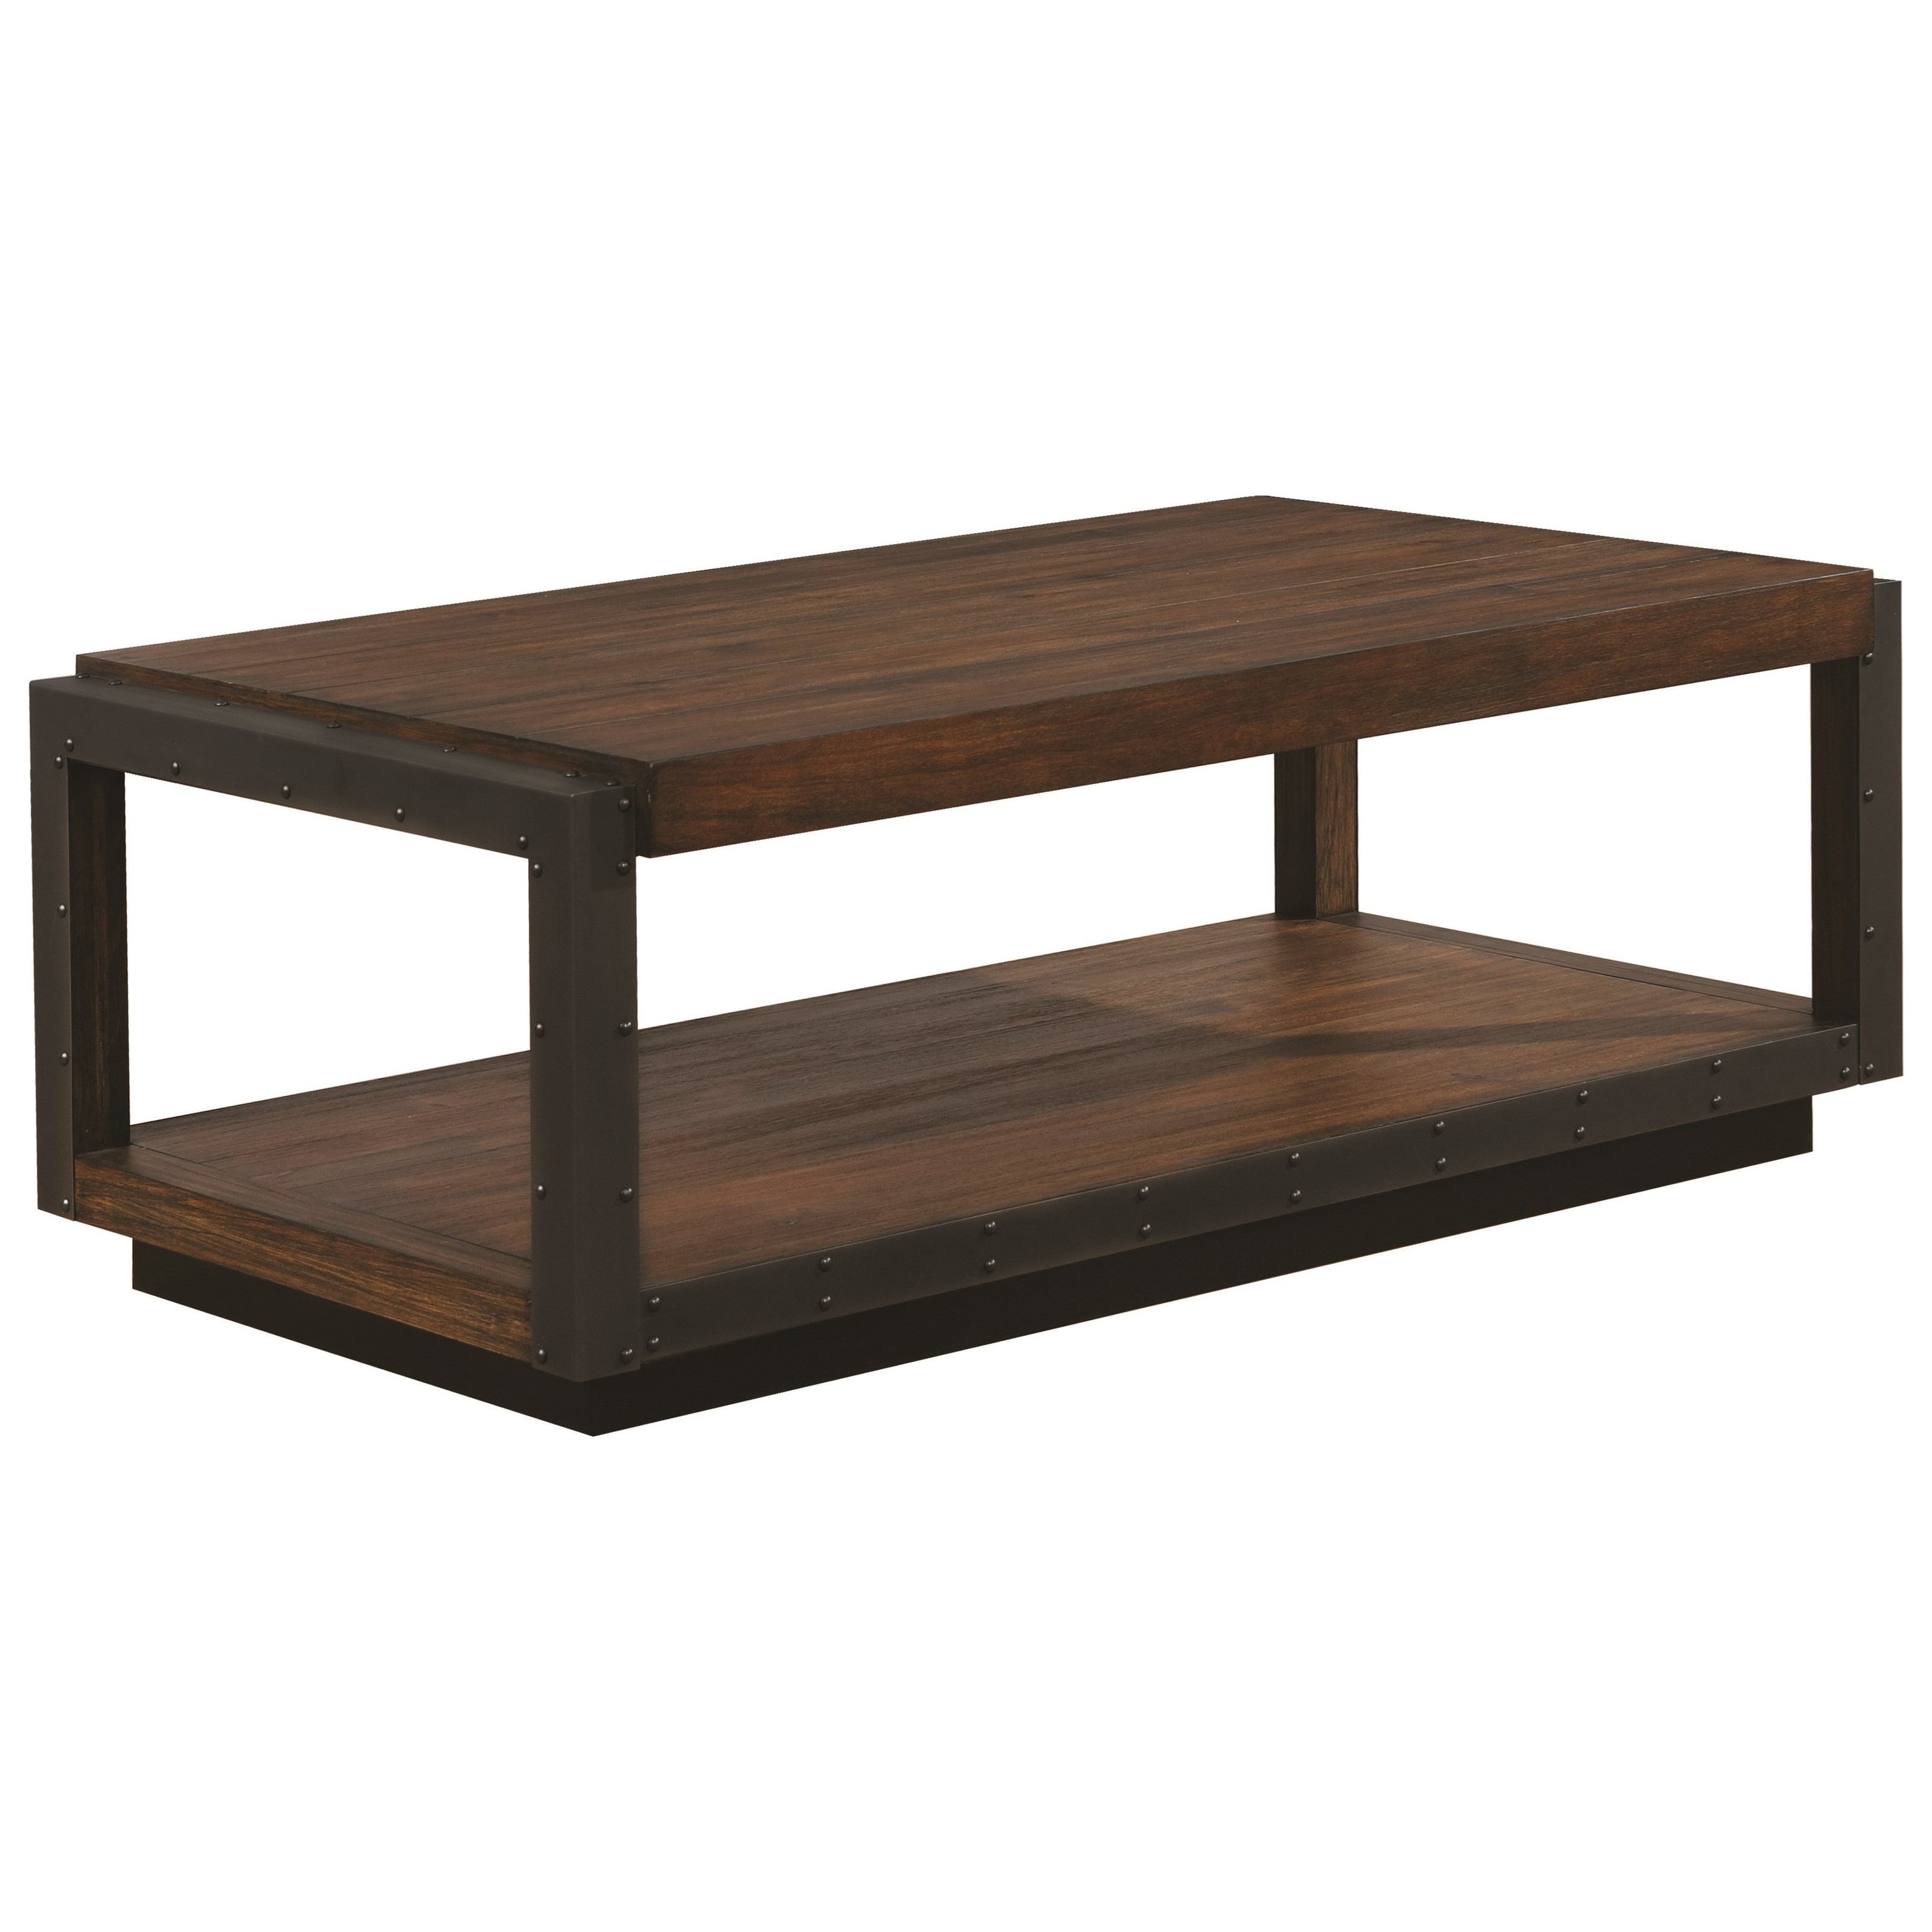 705658 industrial coffee table with black frame